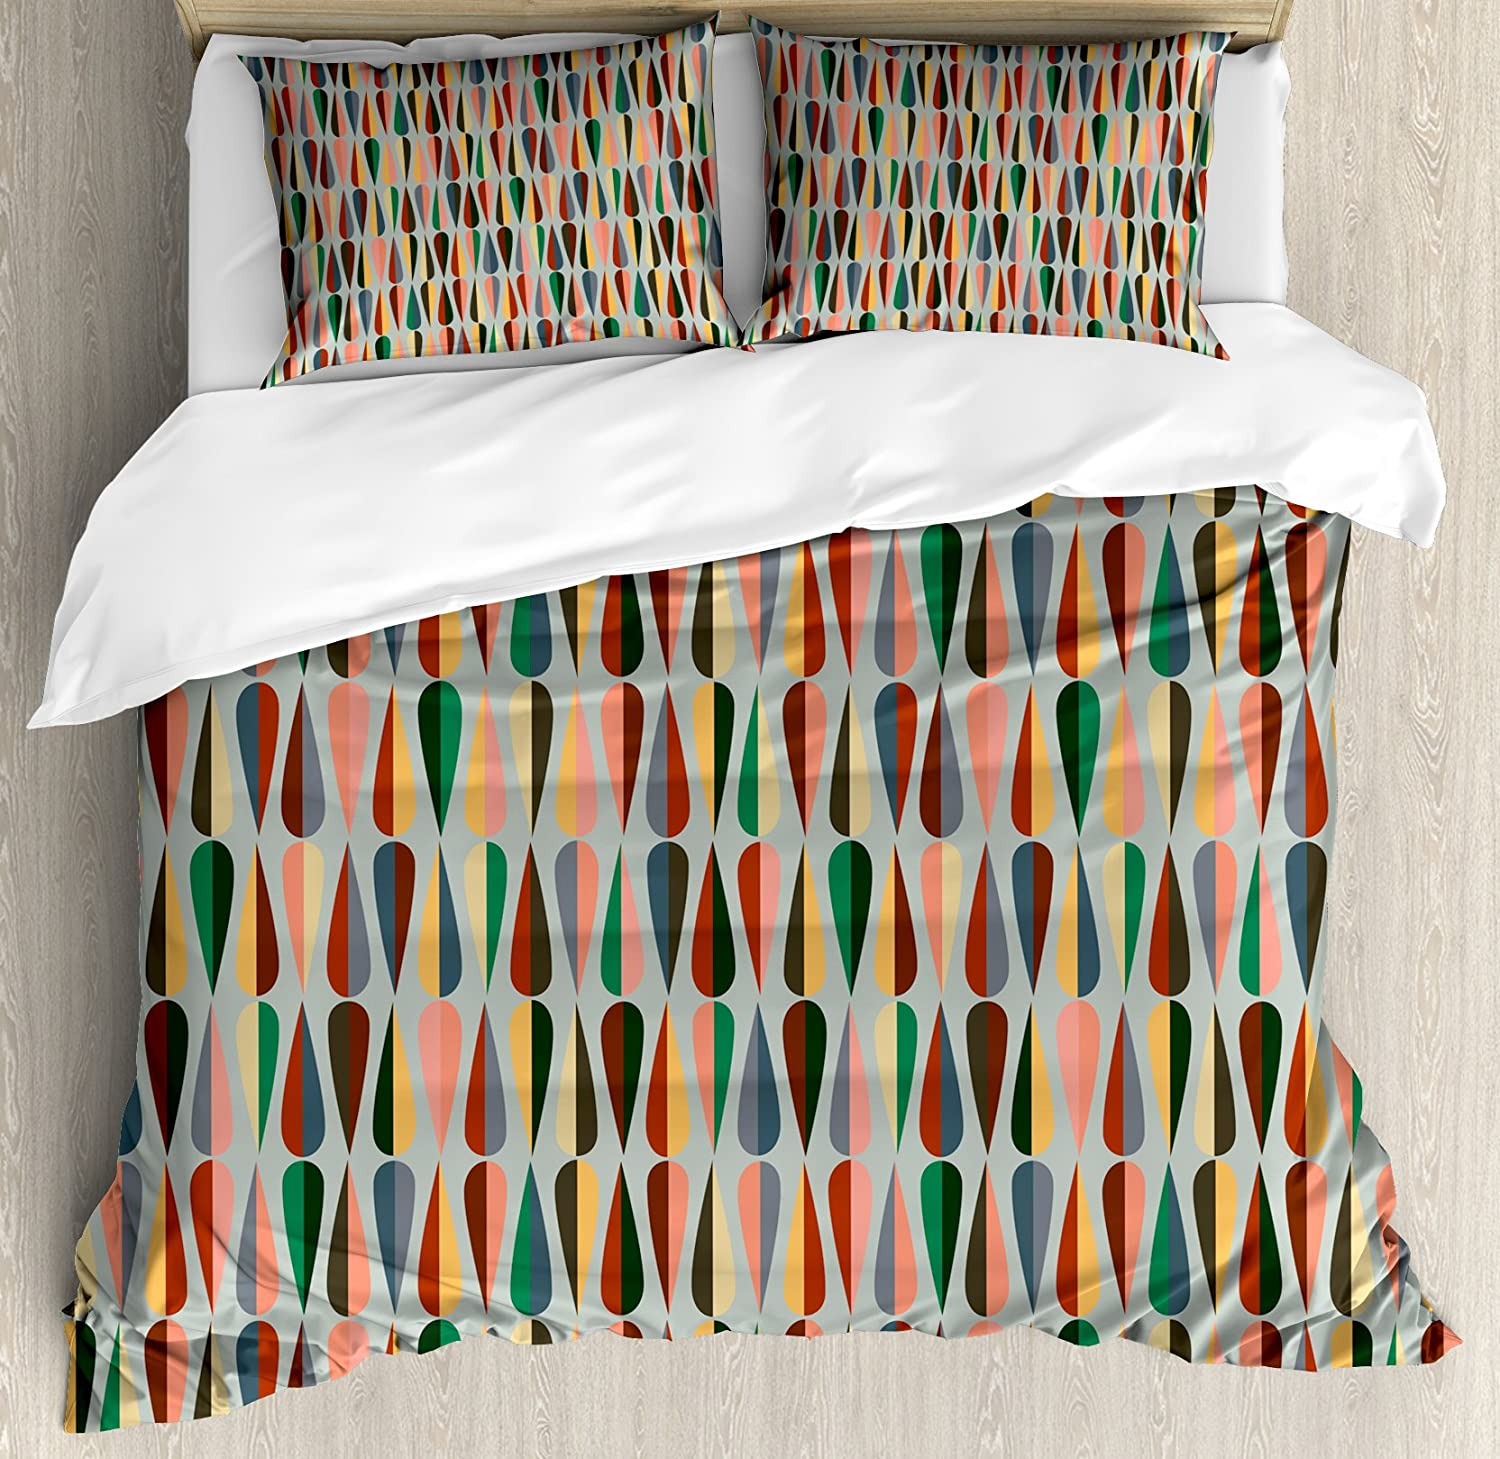 Ambesonne Mid Century Duvet Cover Set Queen Size, Simple Two Colored Drop Shapes Grid Symmetrically Lined on Grey Background, Decorative 3 Piece Bedding Set with 2 Pillow Shams, Multicolor